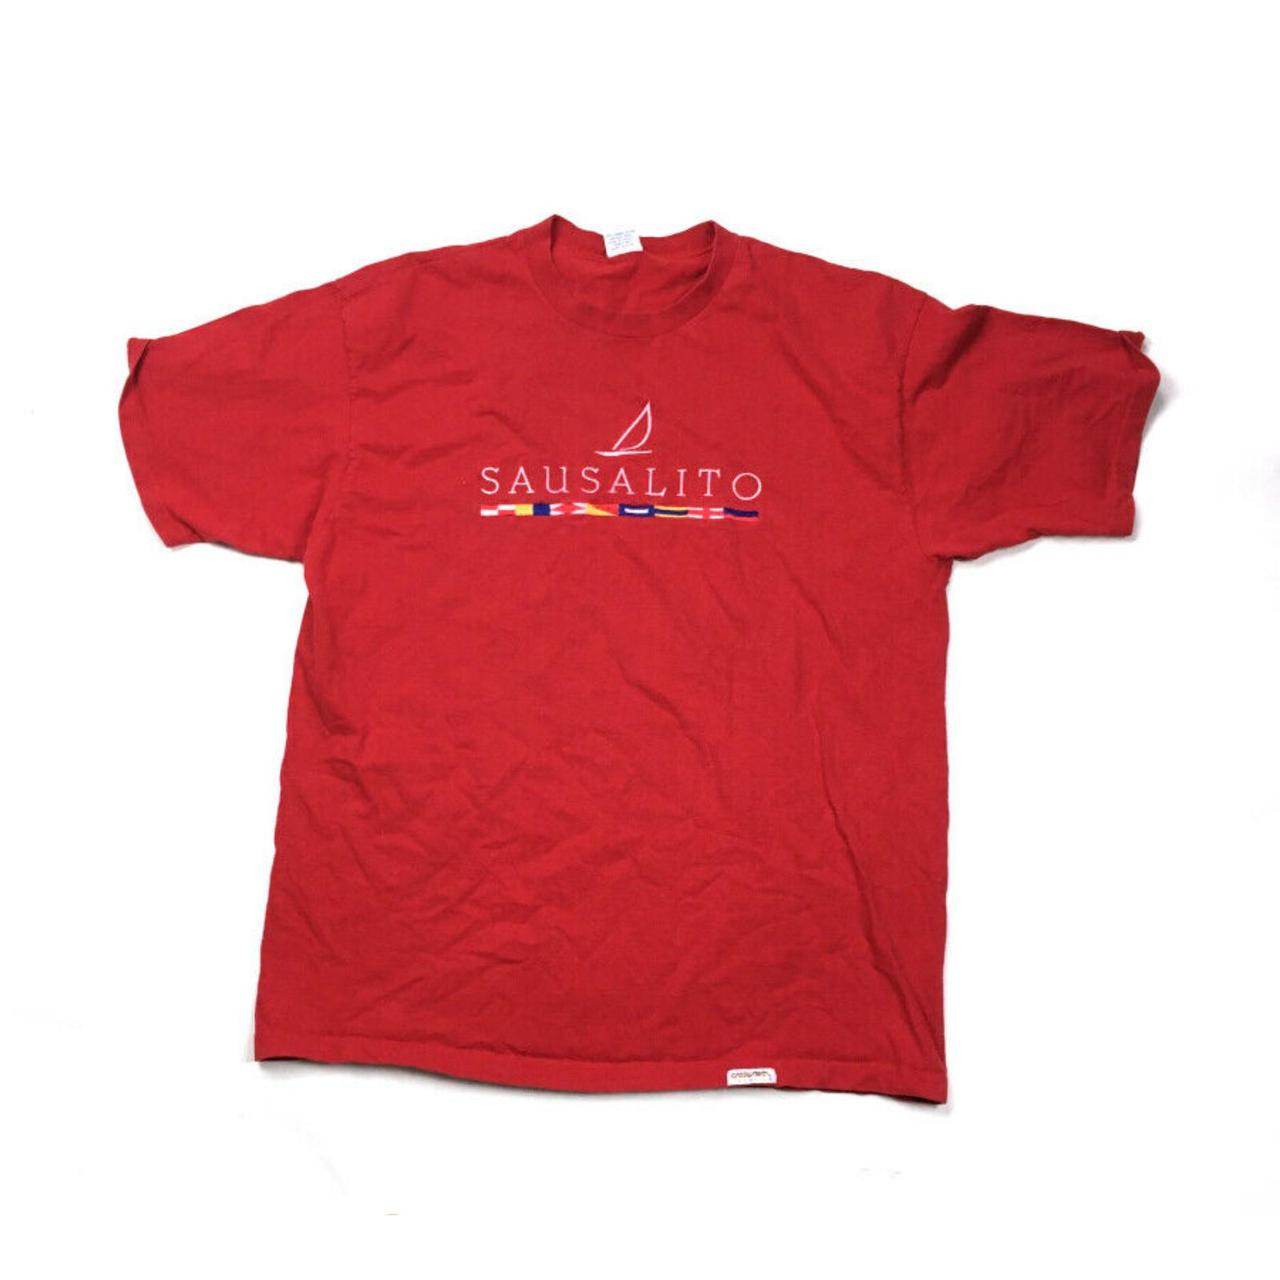 Product Image 1 - VTG Sausalito Red Embroidered T-Shirt